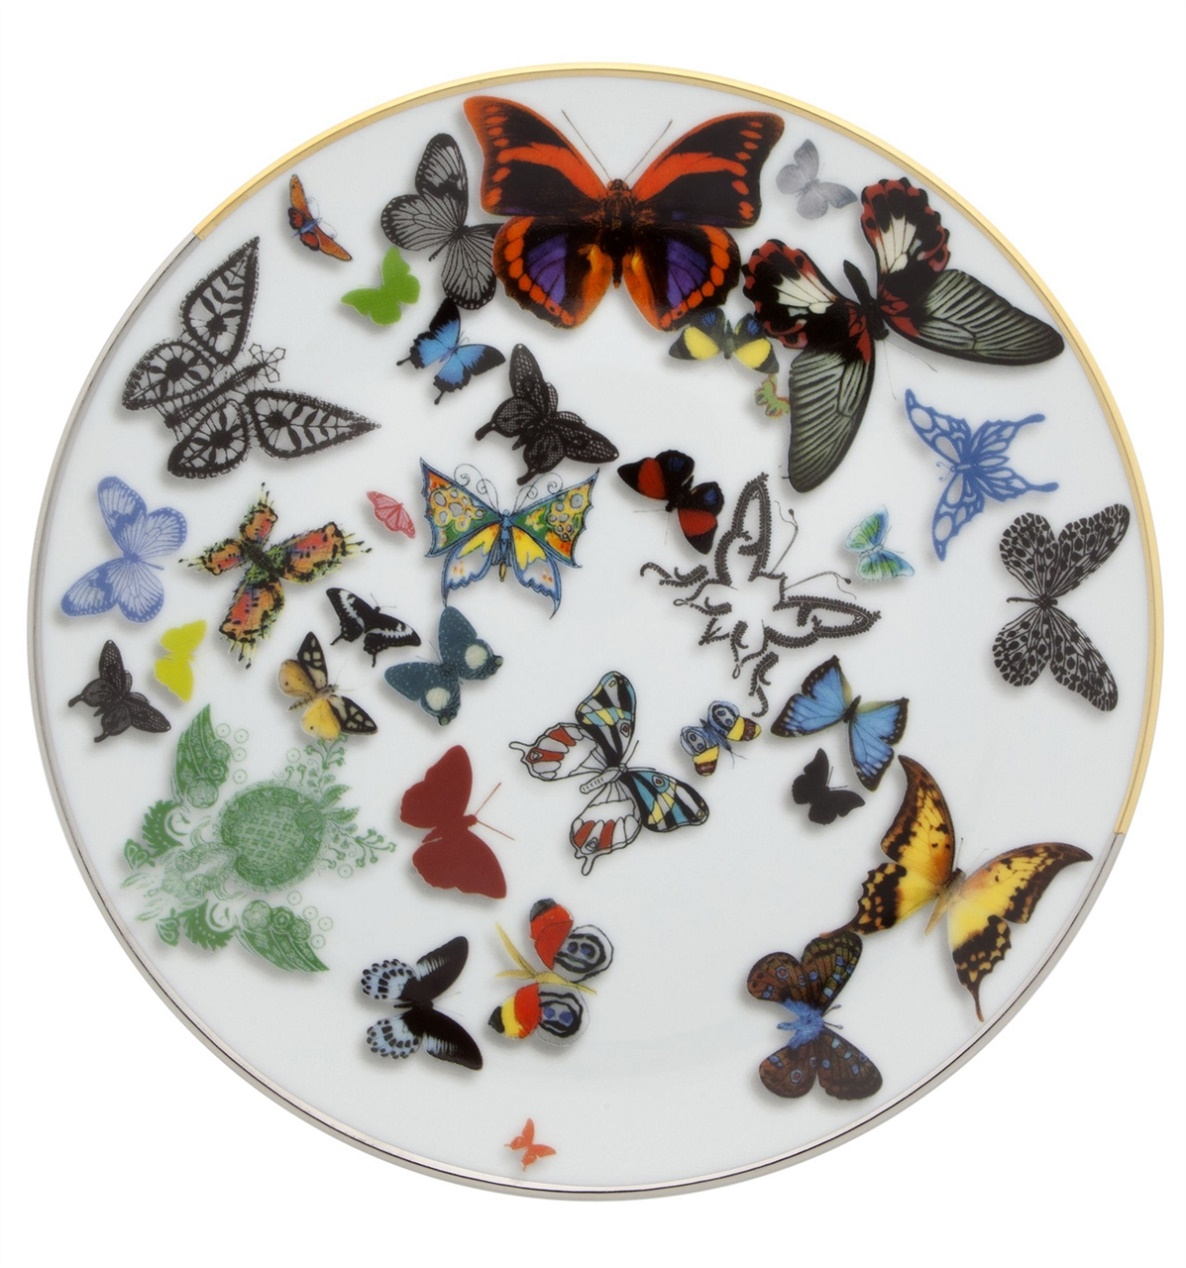 Vista Alegre Collection Butterfly dessert plate by Christian Lacroix